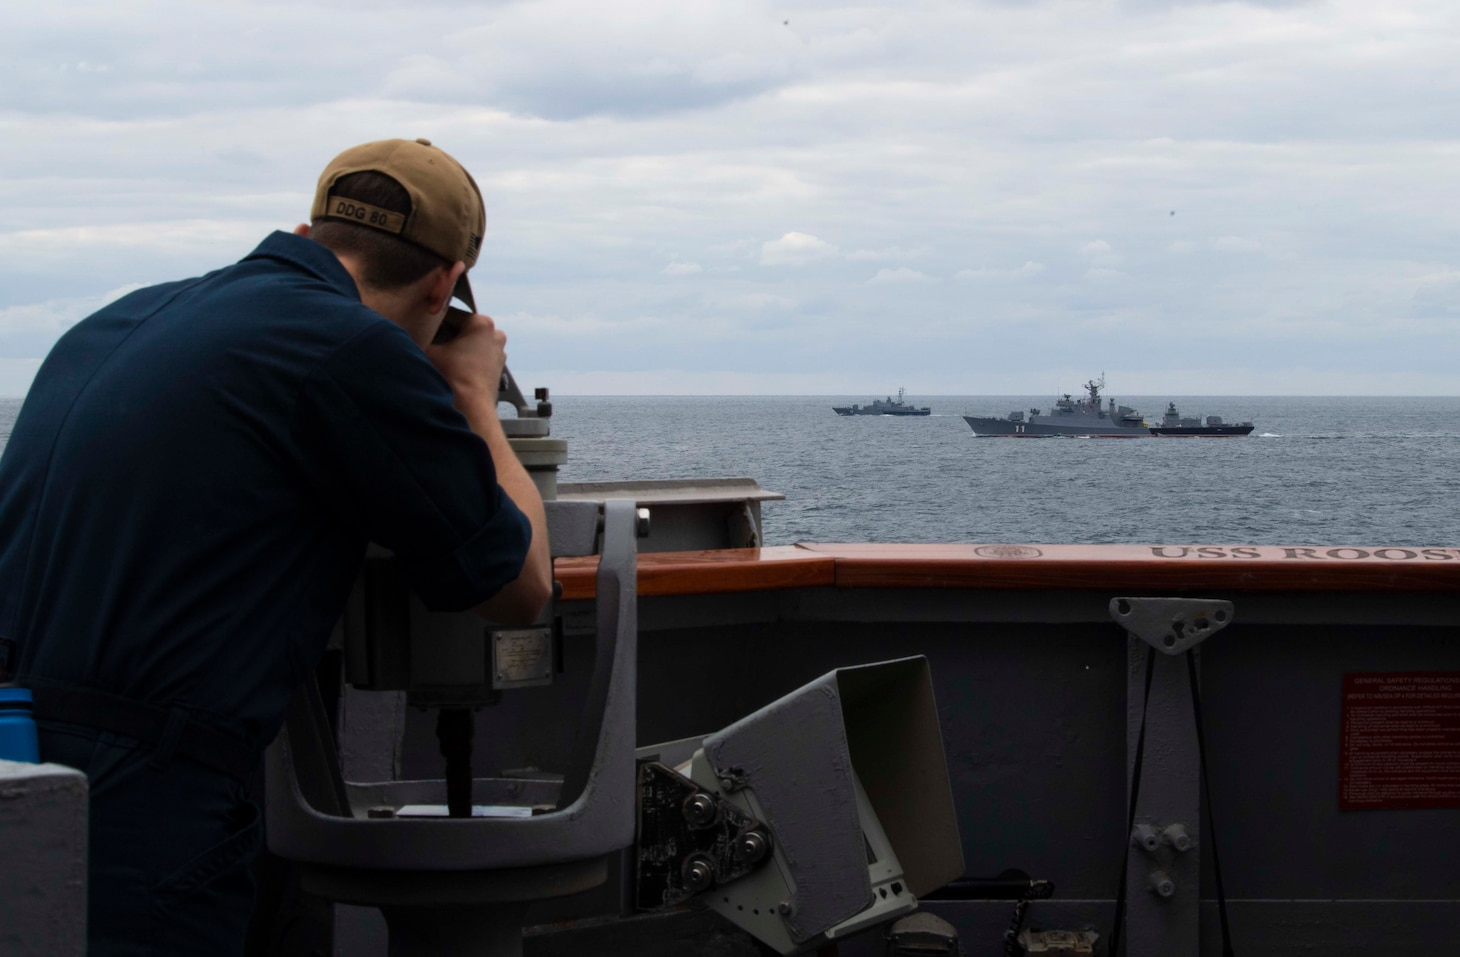 BLACK SEA (Sept. 20, 2020) Quartermaster 2nd Class Daniel A. Draughon takes the bearing of Bulgarian Navy Koni-class frigate BGS Smeli (F-11) and BGS Bodri (F-13) as they participate in a passing exercise with the Arleigh Burke-class guided-missile destroyer USS Roosevelt (DDG 80), Sept. 20, 2020. Roosevelt, forward-deployed to Rota, Spain, is on its first patrol in the U.S. Sixth Fleet area of operations in support of regional allies and partners and U.S. national security interests in Europe and Africa.